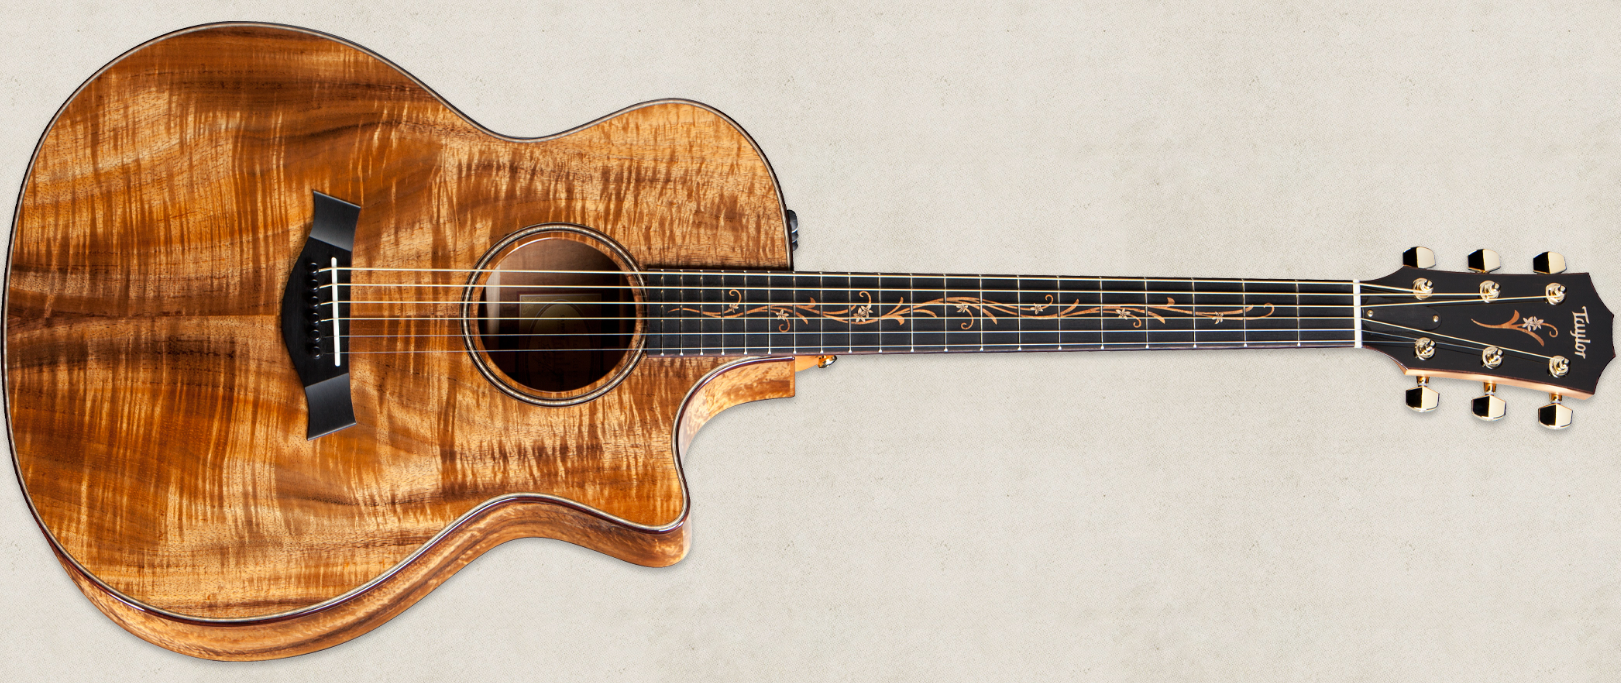 The Taylor K24ce Crafted From Solid Hawaiian Koa Provides A Tone That Becomes Warmer The More It Is Played T Taylor Guitars Guitar Acoustic Guitar For Sale